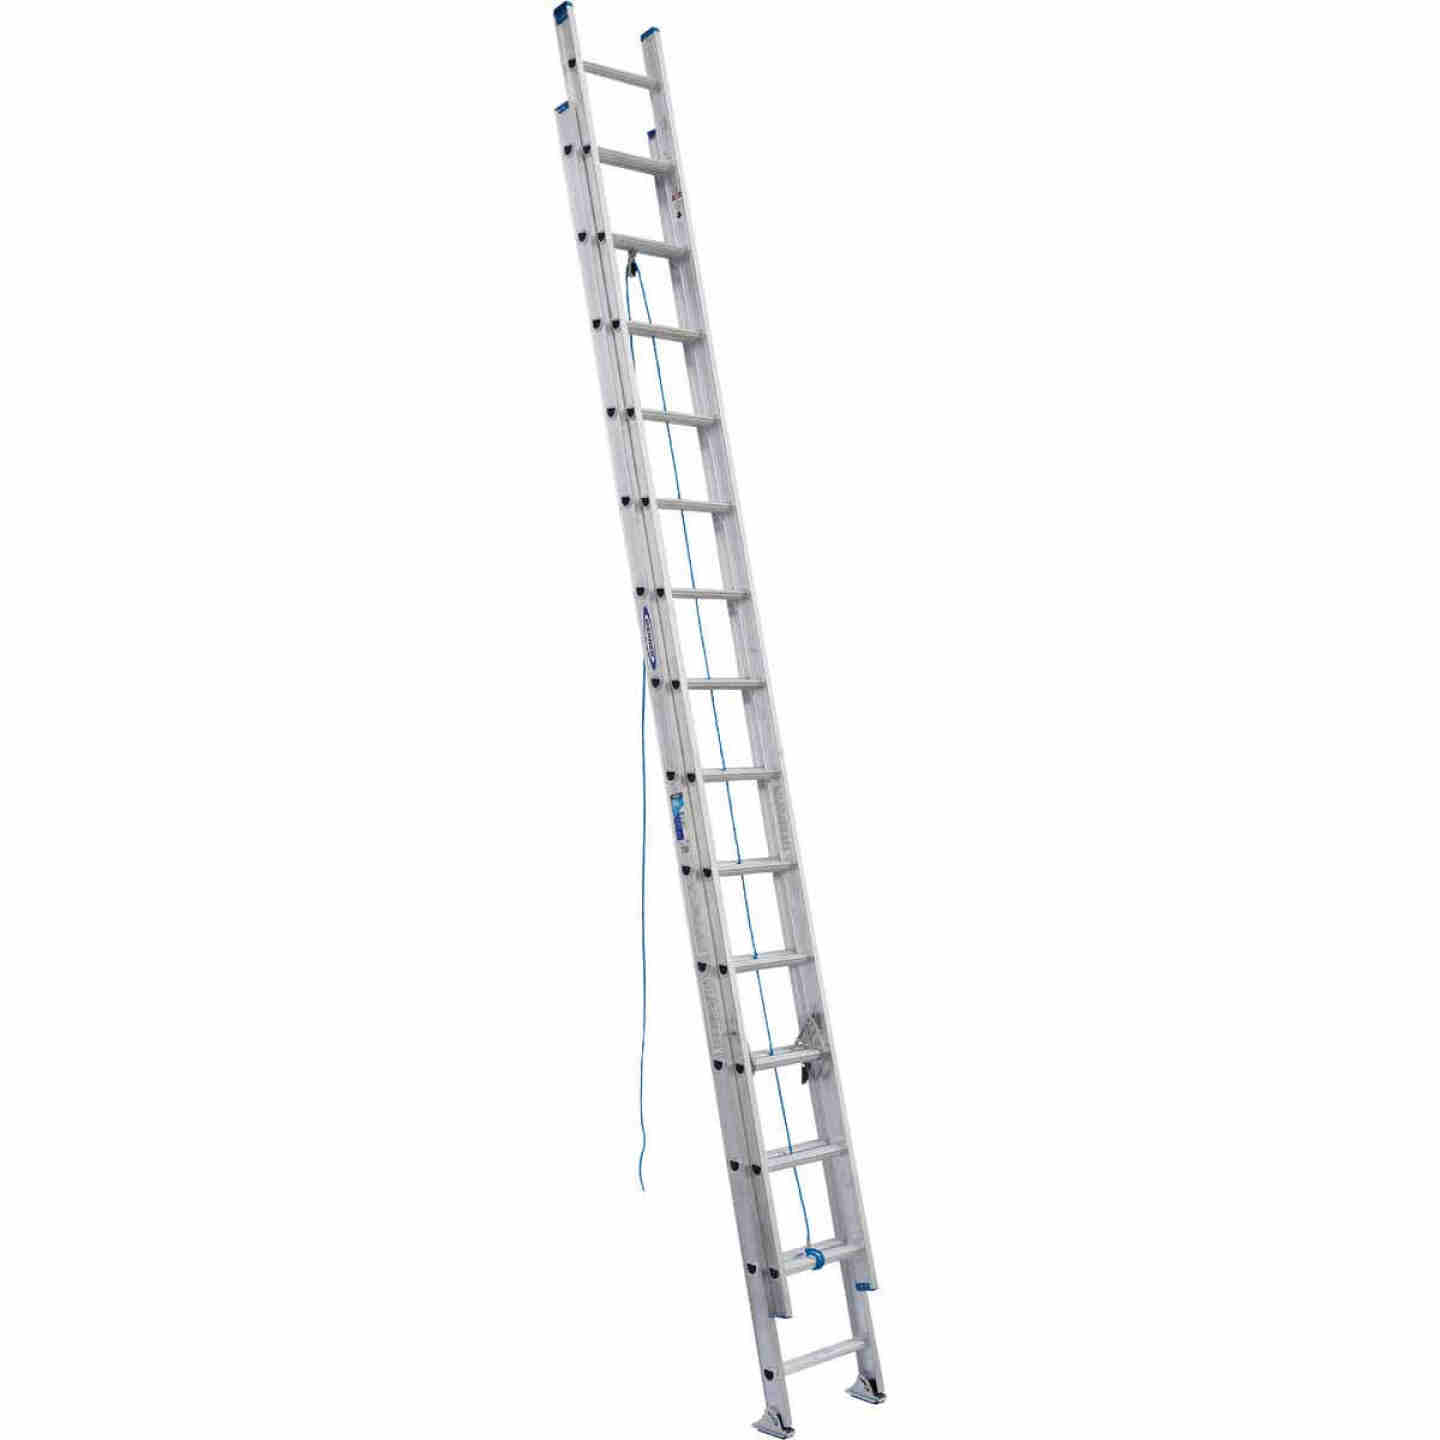 Werner 28 Ft. Aluminum Extension Ladder with 250 Lb. Load Capacity Type I Duty Rating Image 1